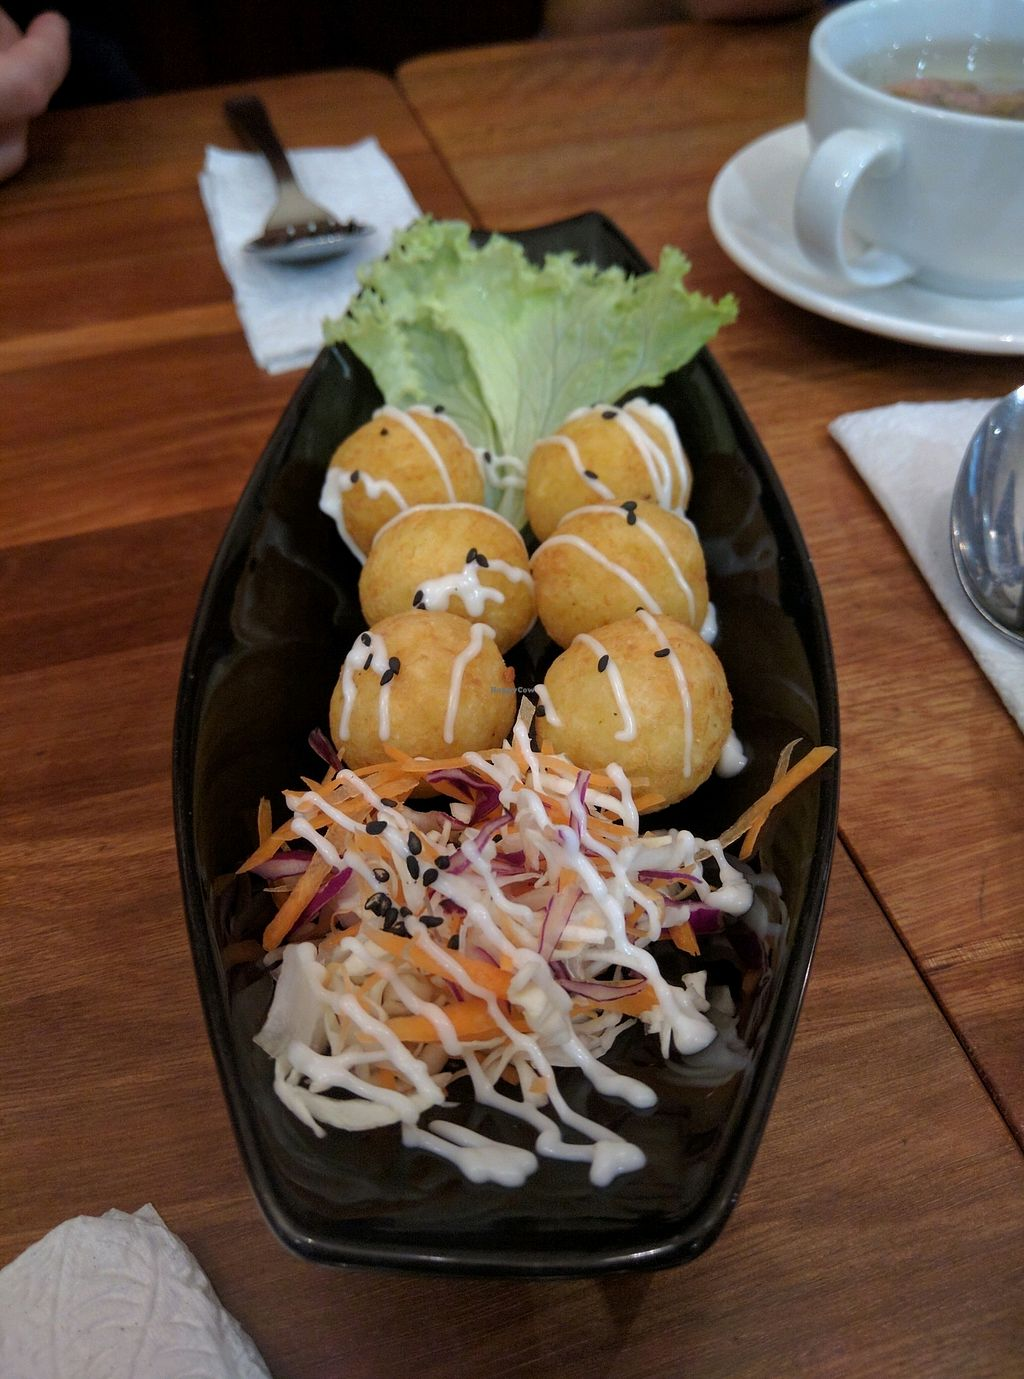 """Photo of Journey2Life  by <a href=""""/members/profile/Summer_Tan"""">Summer_Tan</a> <br/>213: Potato Ball - RM8.35 Pretty good. Light and crunchy, with a soft melts in your mouth texture on the inside. A bit overpriced <br/> January 31, 2018  - <a href='/contact/abuse/image/33178/353324'>Report</a>"""